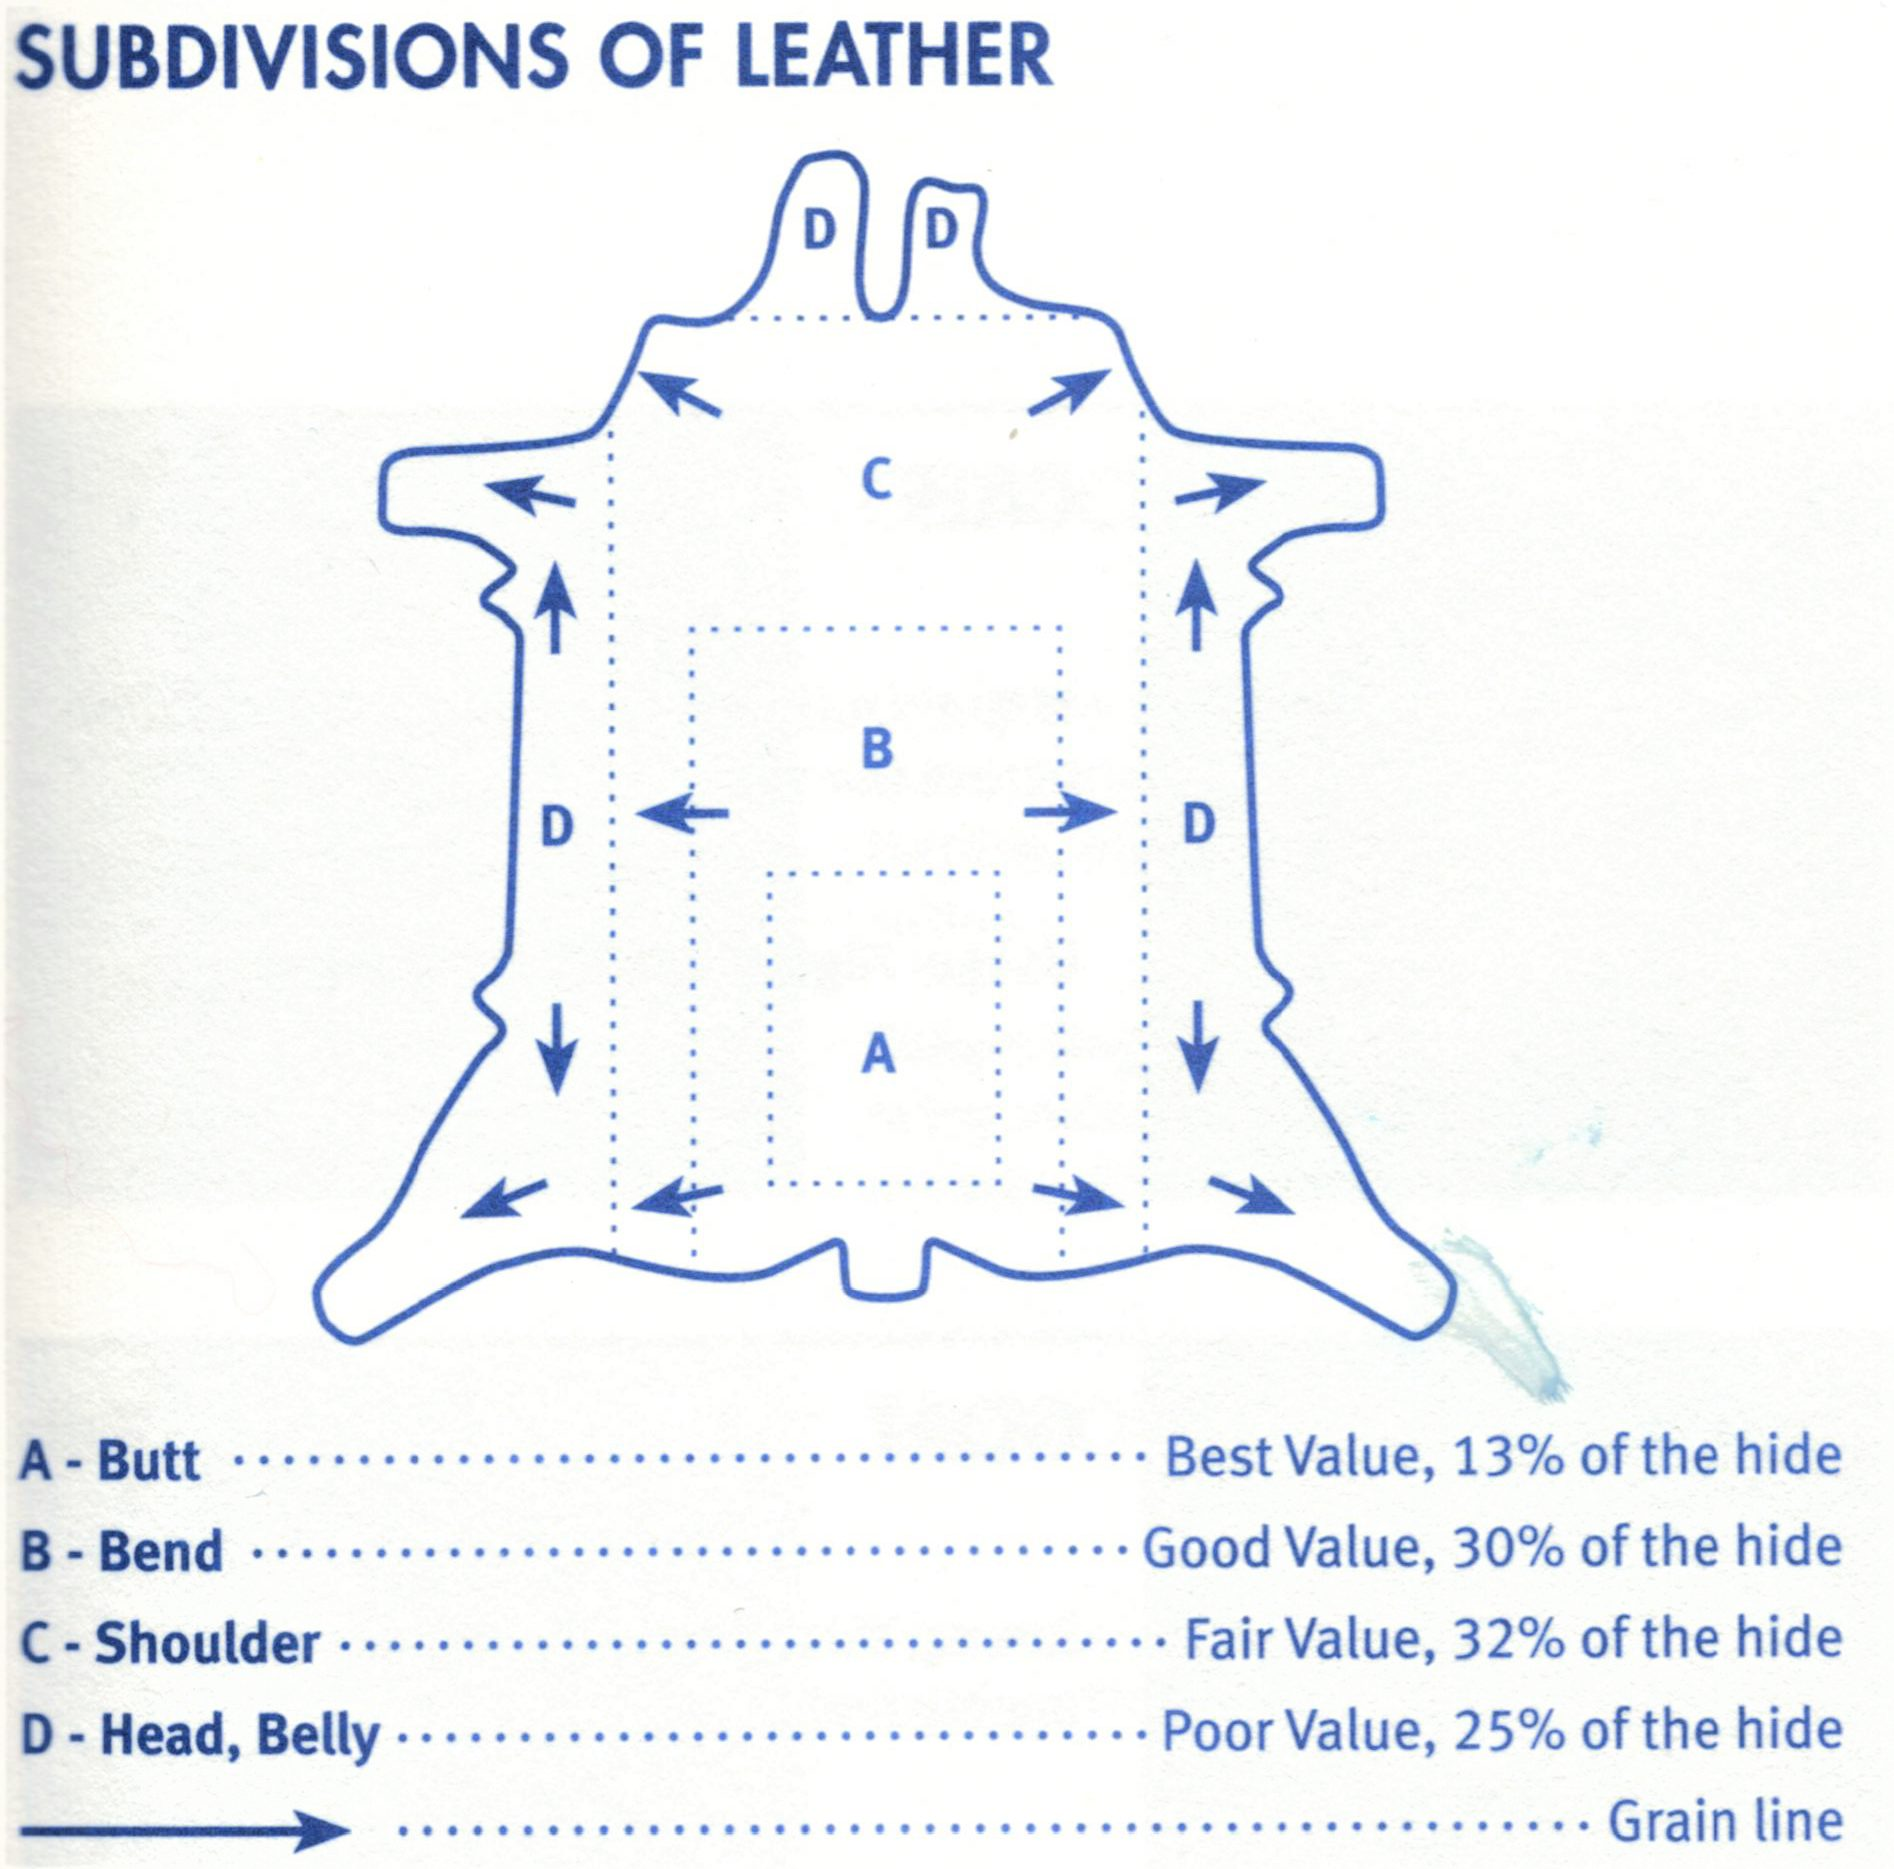 Subdivisions of leather